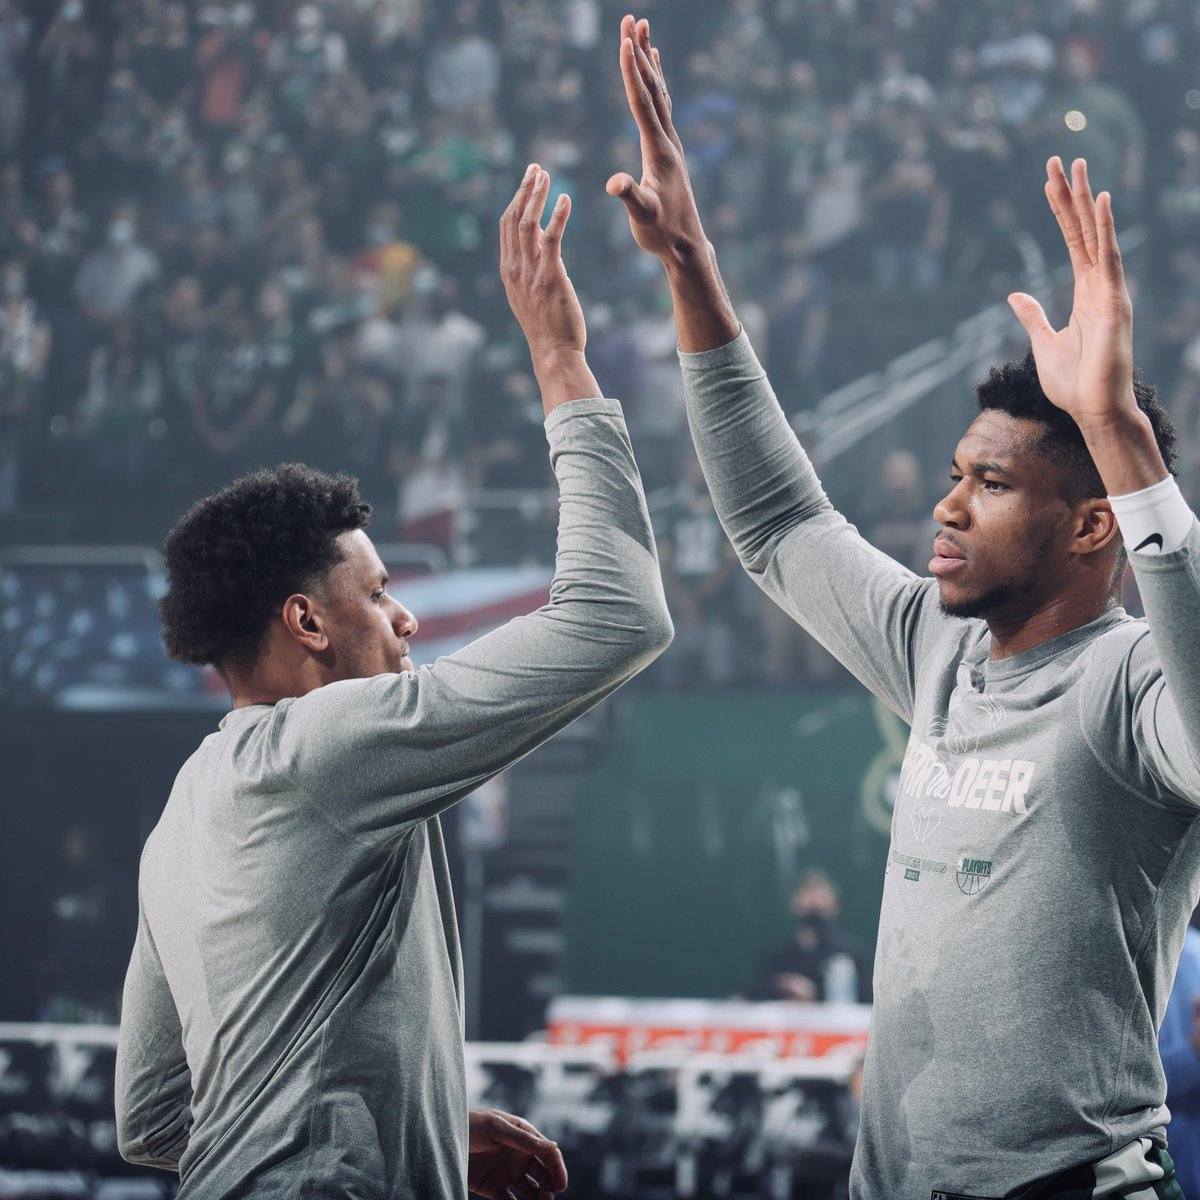 The dream is free... but the grind sold separately.   Bucks fans we are going to need you ! 🔥 https://t.co/6eXEOUkWQ9